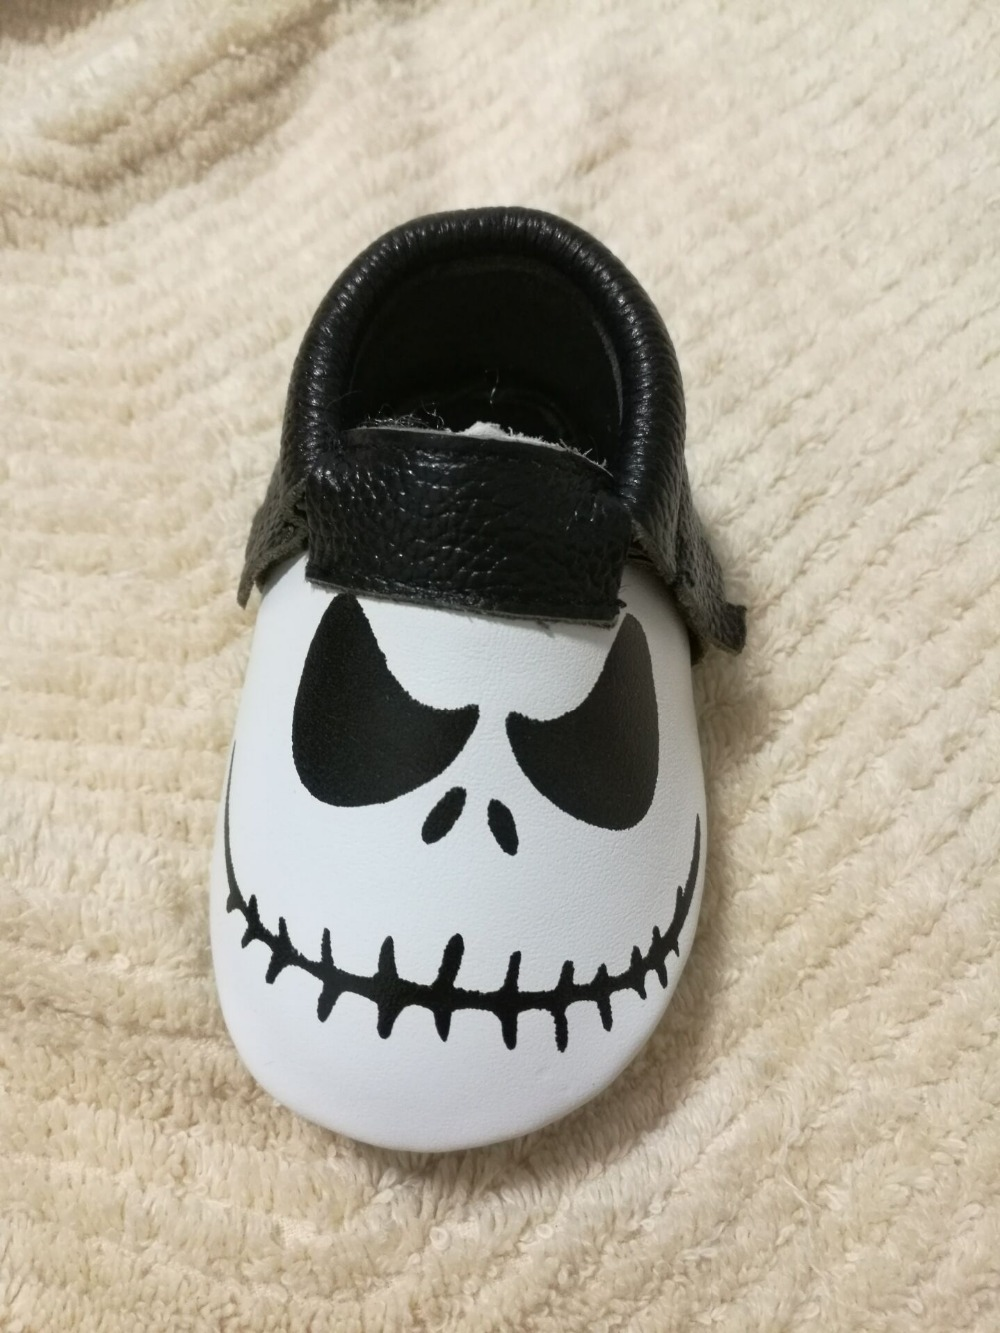 New-Stylish-Genuine-Leather-Baby-Moccasins-Shoes-Halloween-presents-for-bebe-Baby-Shoes-Newborn-first-walker-toddler-Shoes-5